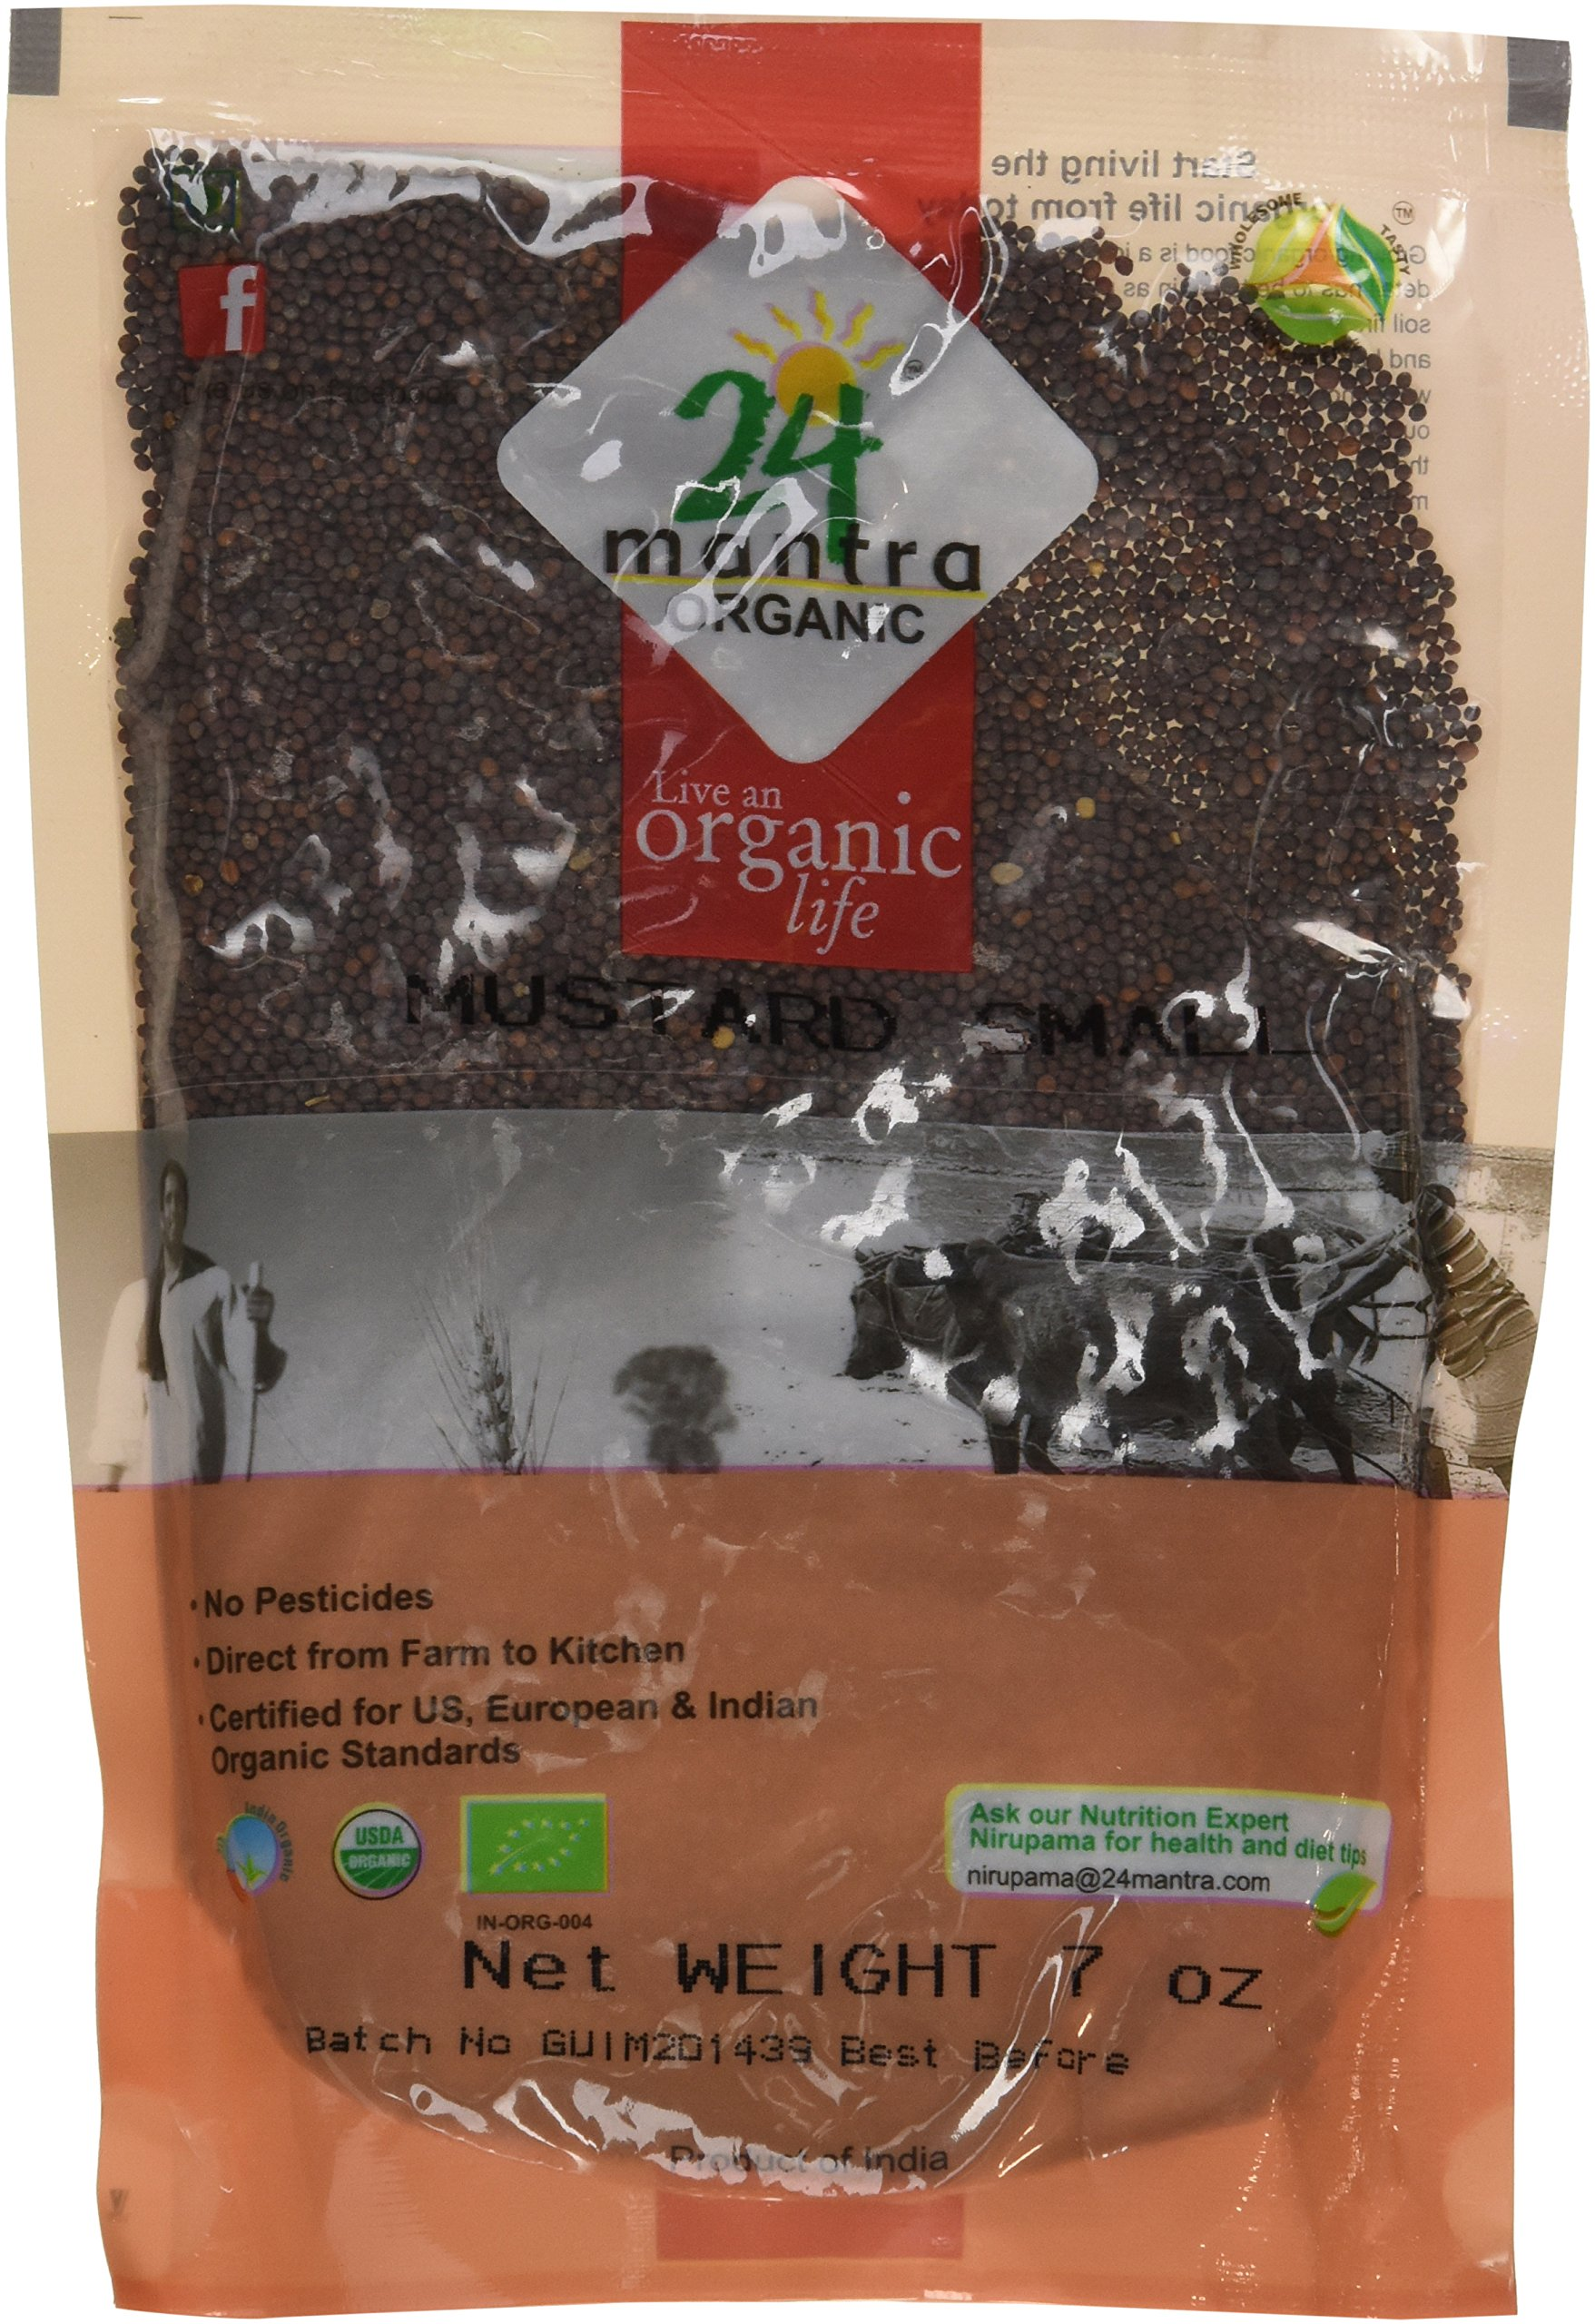 Organic Mustard Seeds Small - ★ USDA Certified Organic - ★ European Union Certified Organic - ★ Pesticides Free - ★ Adulteration Free - ★ Sodium Free - Pack of 3 X 7 Ounces (21 Ounces) - 24 Mantra Organic